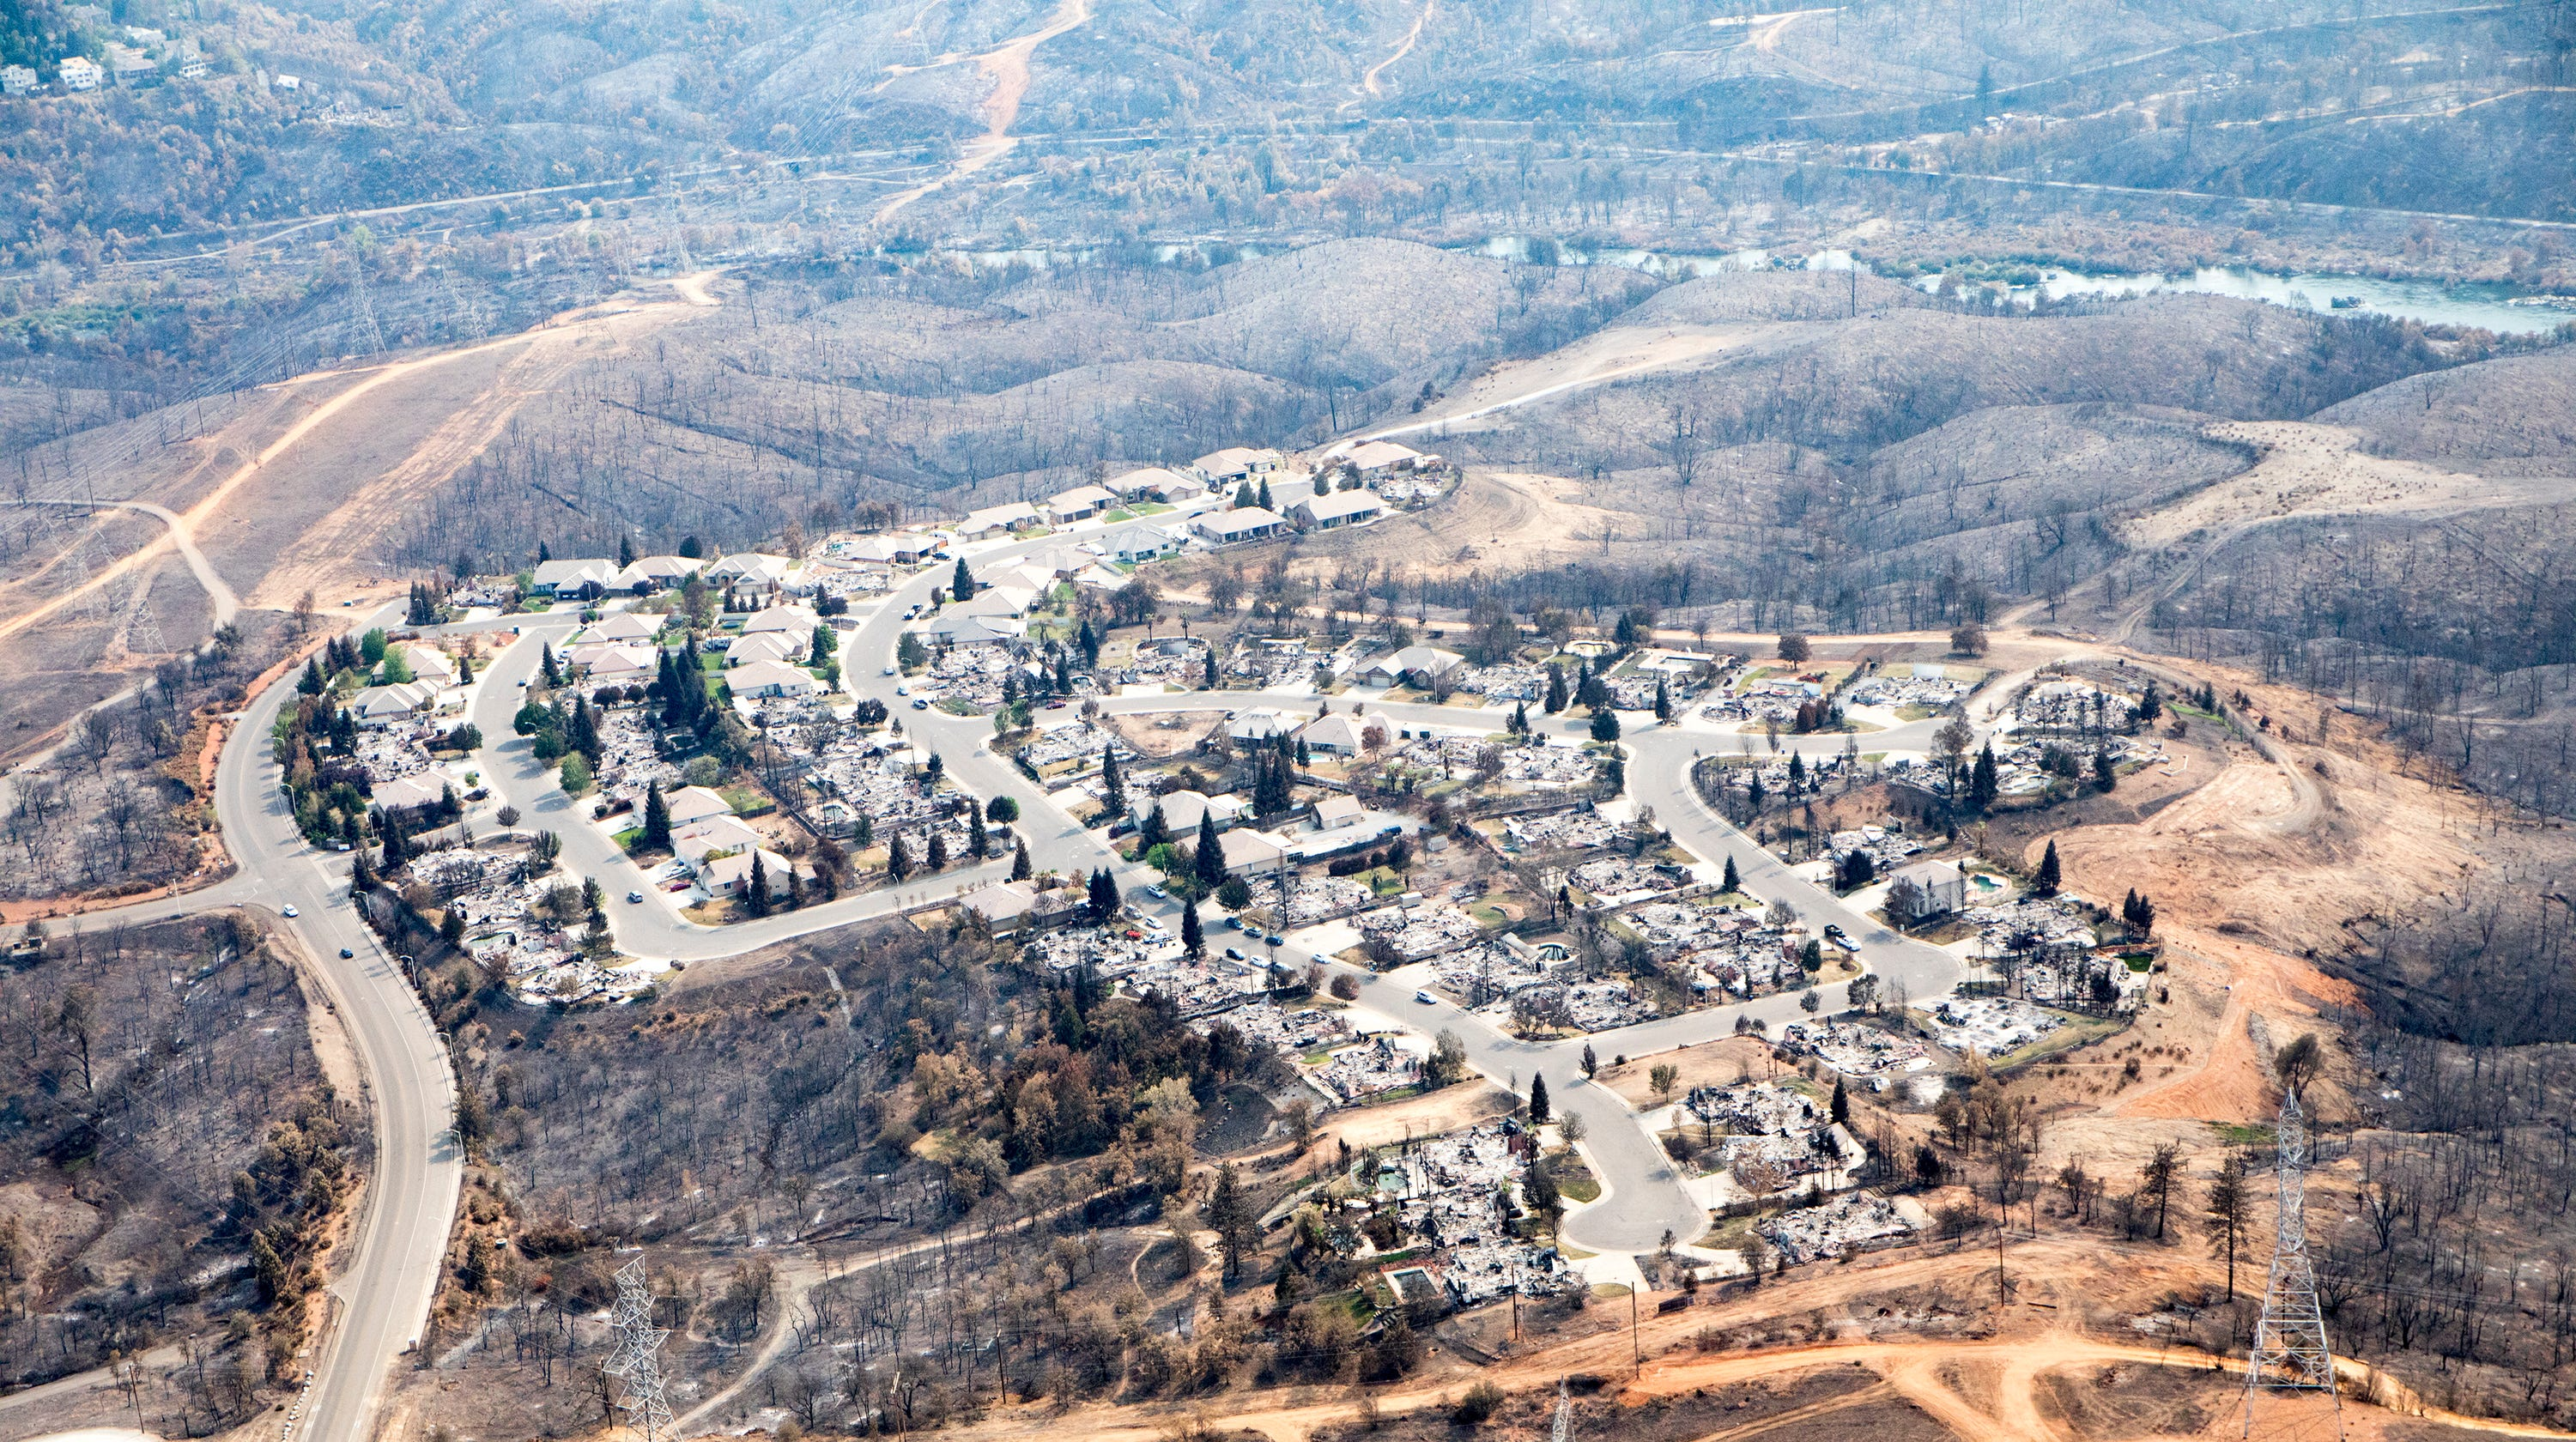 aerial view of carr fire in california shows scale of destruction